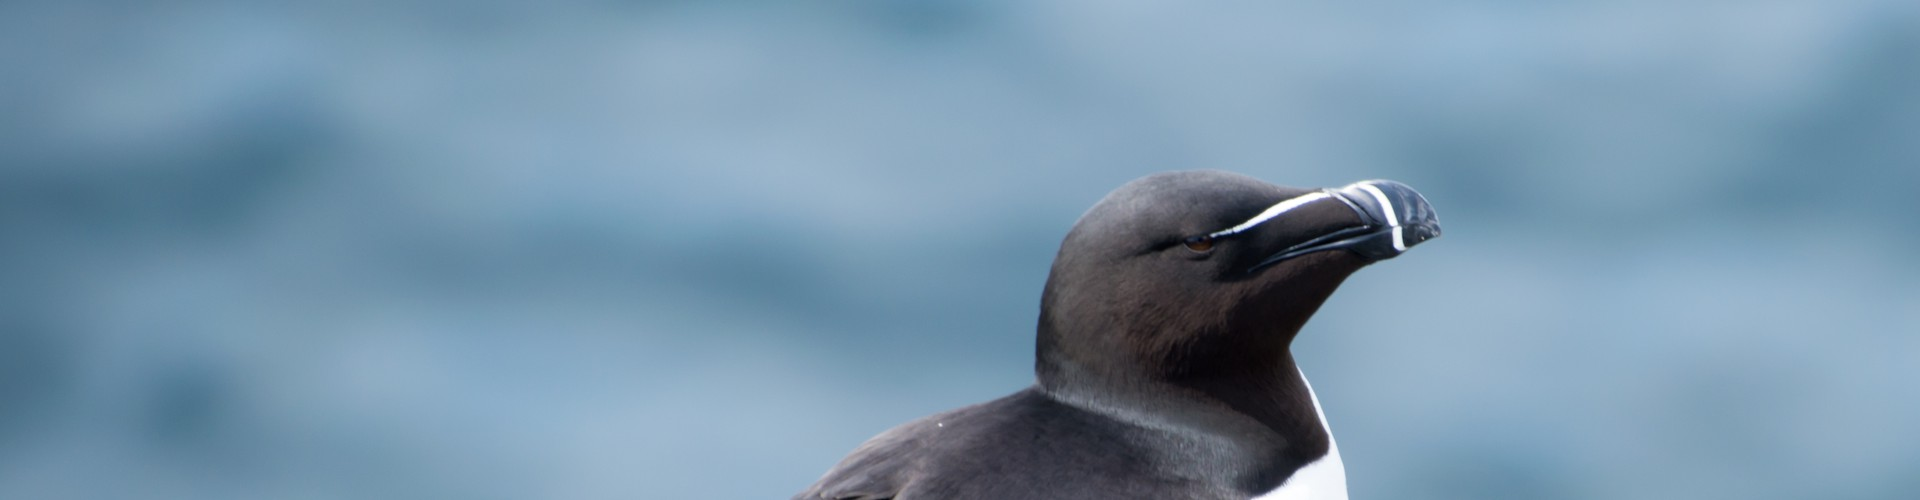 Razorbill photographed in Kilrenny, Scotland in 2018 (Credit: theleastweasel)